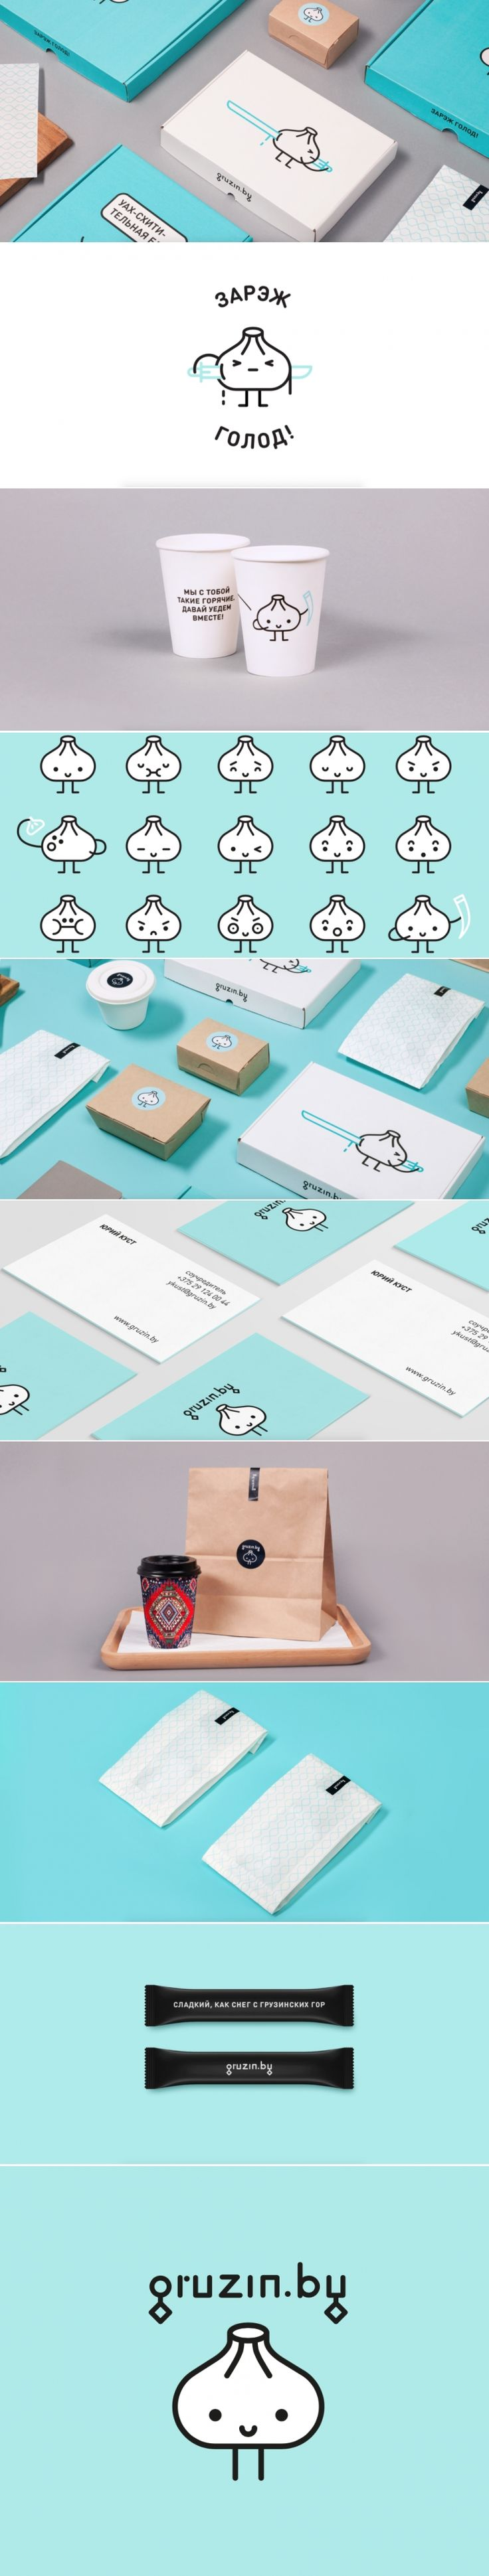 This Belarusian Restaurant Branding Comes With An Adorable Mascot — The Dieline | Packaging & Branding Design & Innovation News